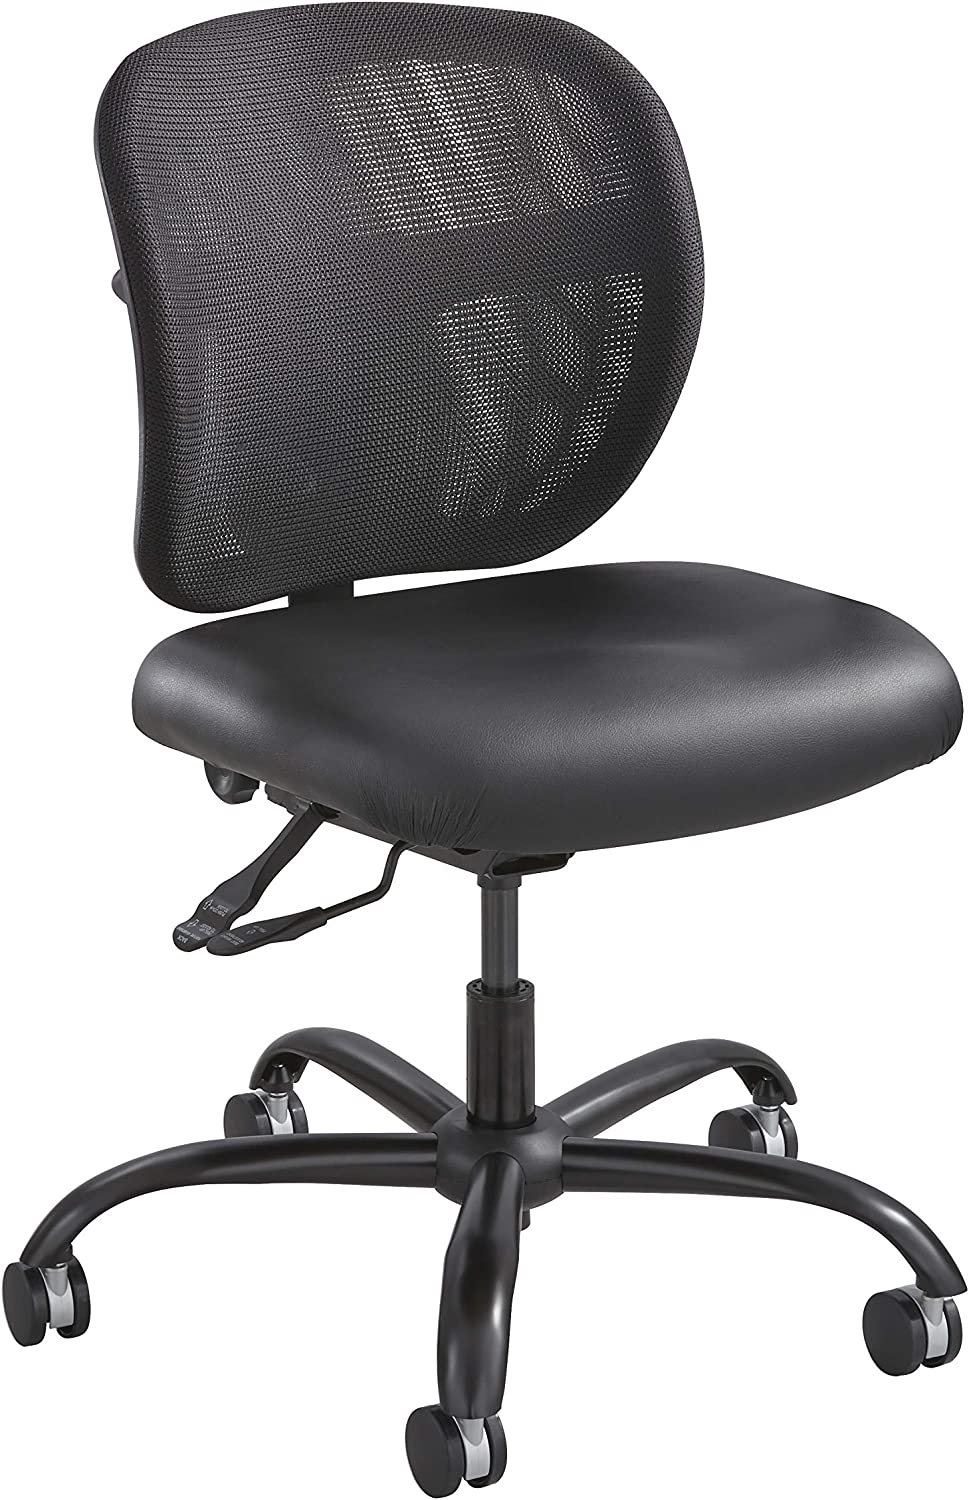 Safco Products Vue Intensive-Use Task Chair 3397BV, Rated up to 500 lbs, Cool Mesh Back, Waterfall Edge Seat